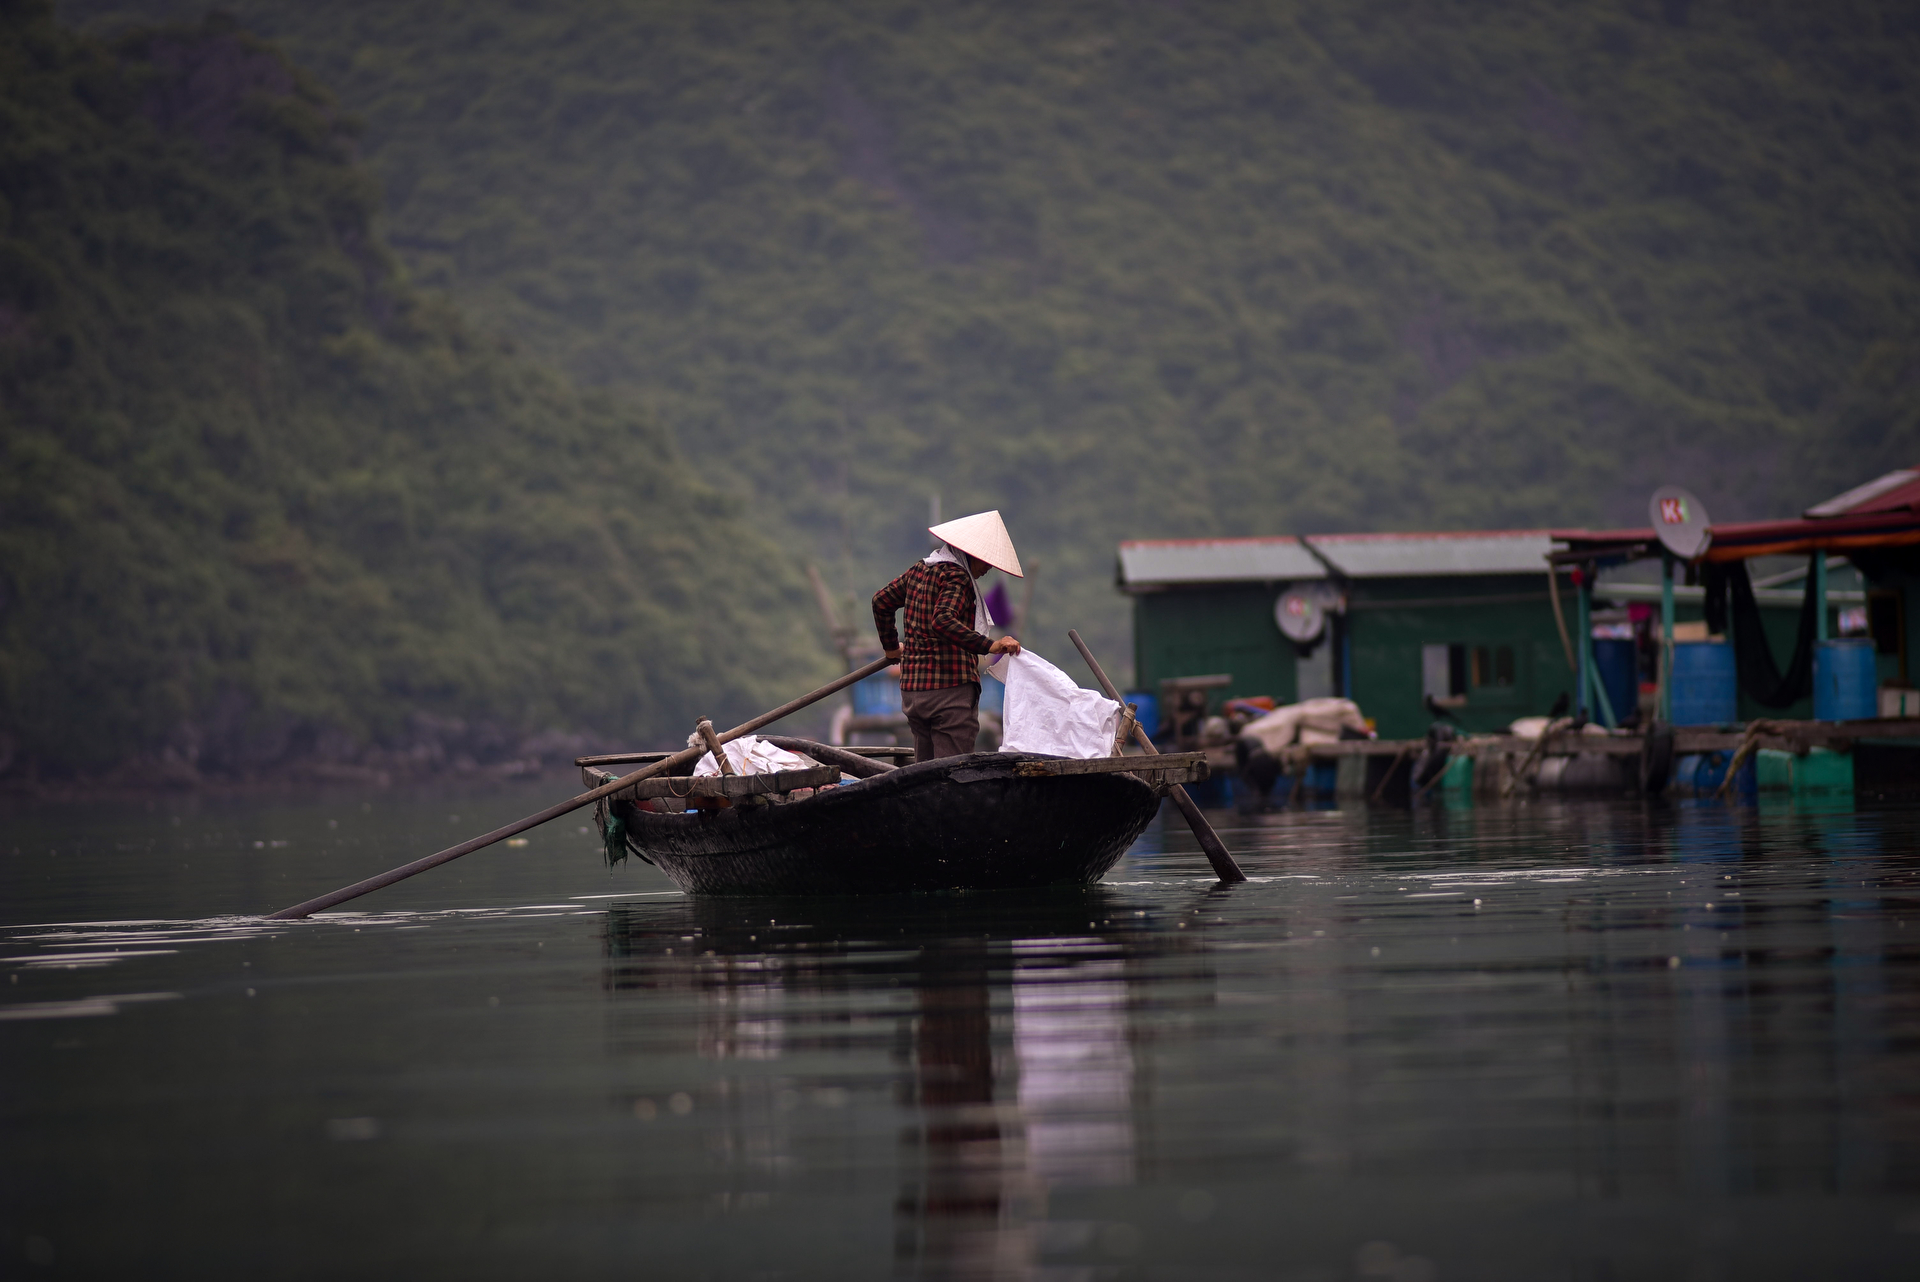 Life in Halong Bay brings everything down to a basic level